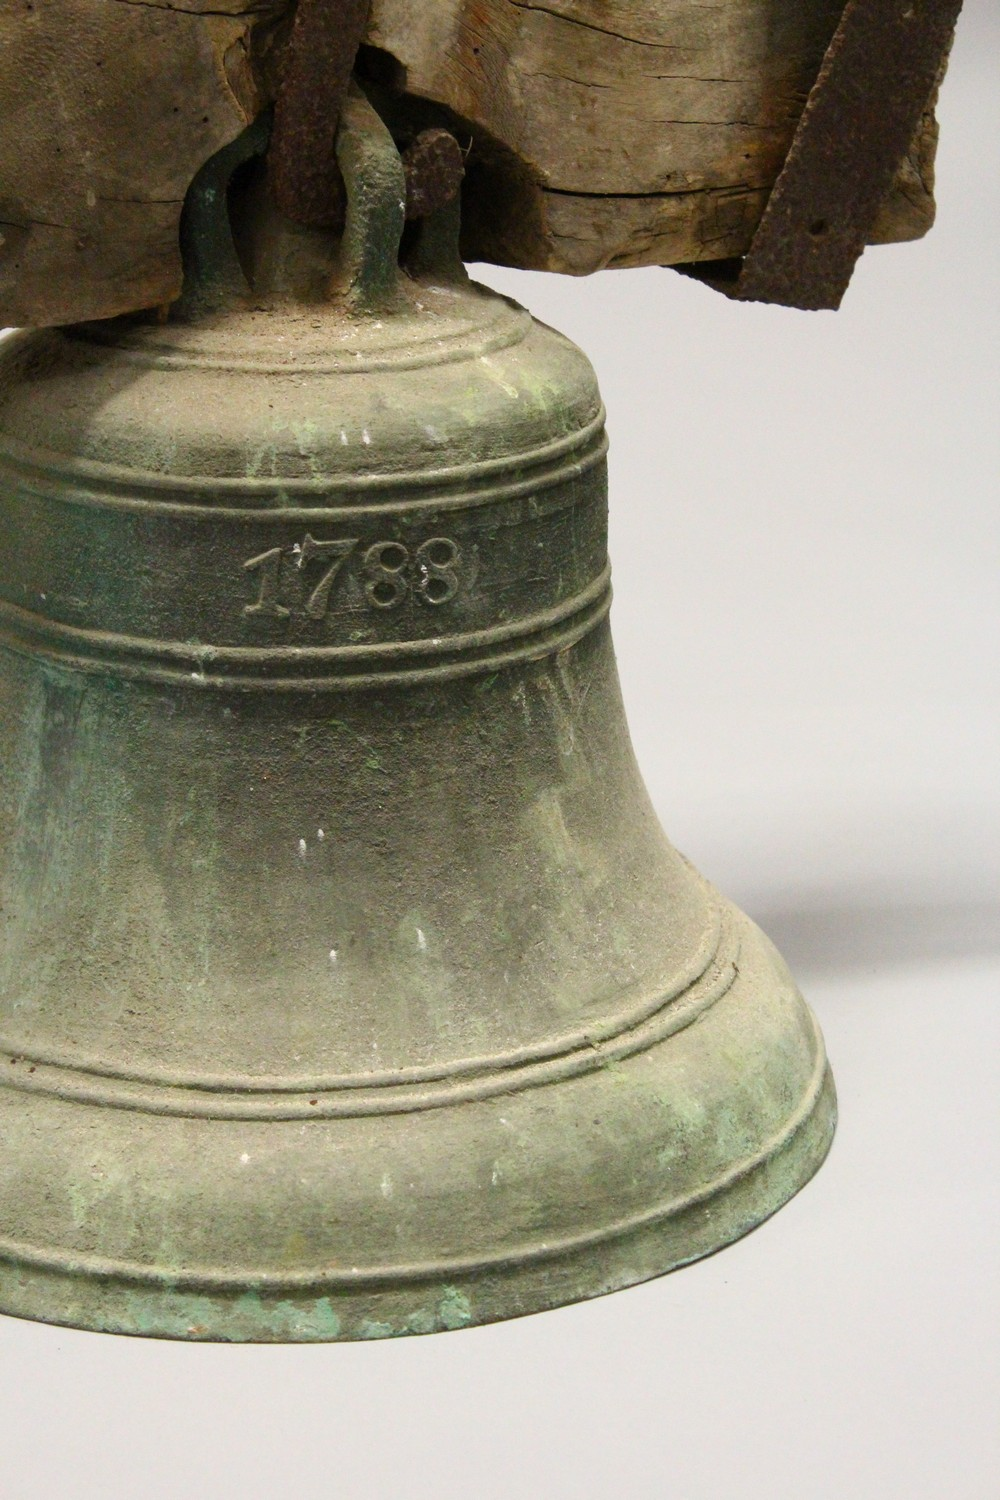 Lot 1344 - A SIMILAR, SMALLER BELL, hung from a section of oak beam, with wrought iron mounts, bell lacking